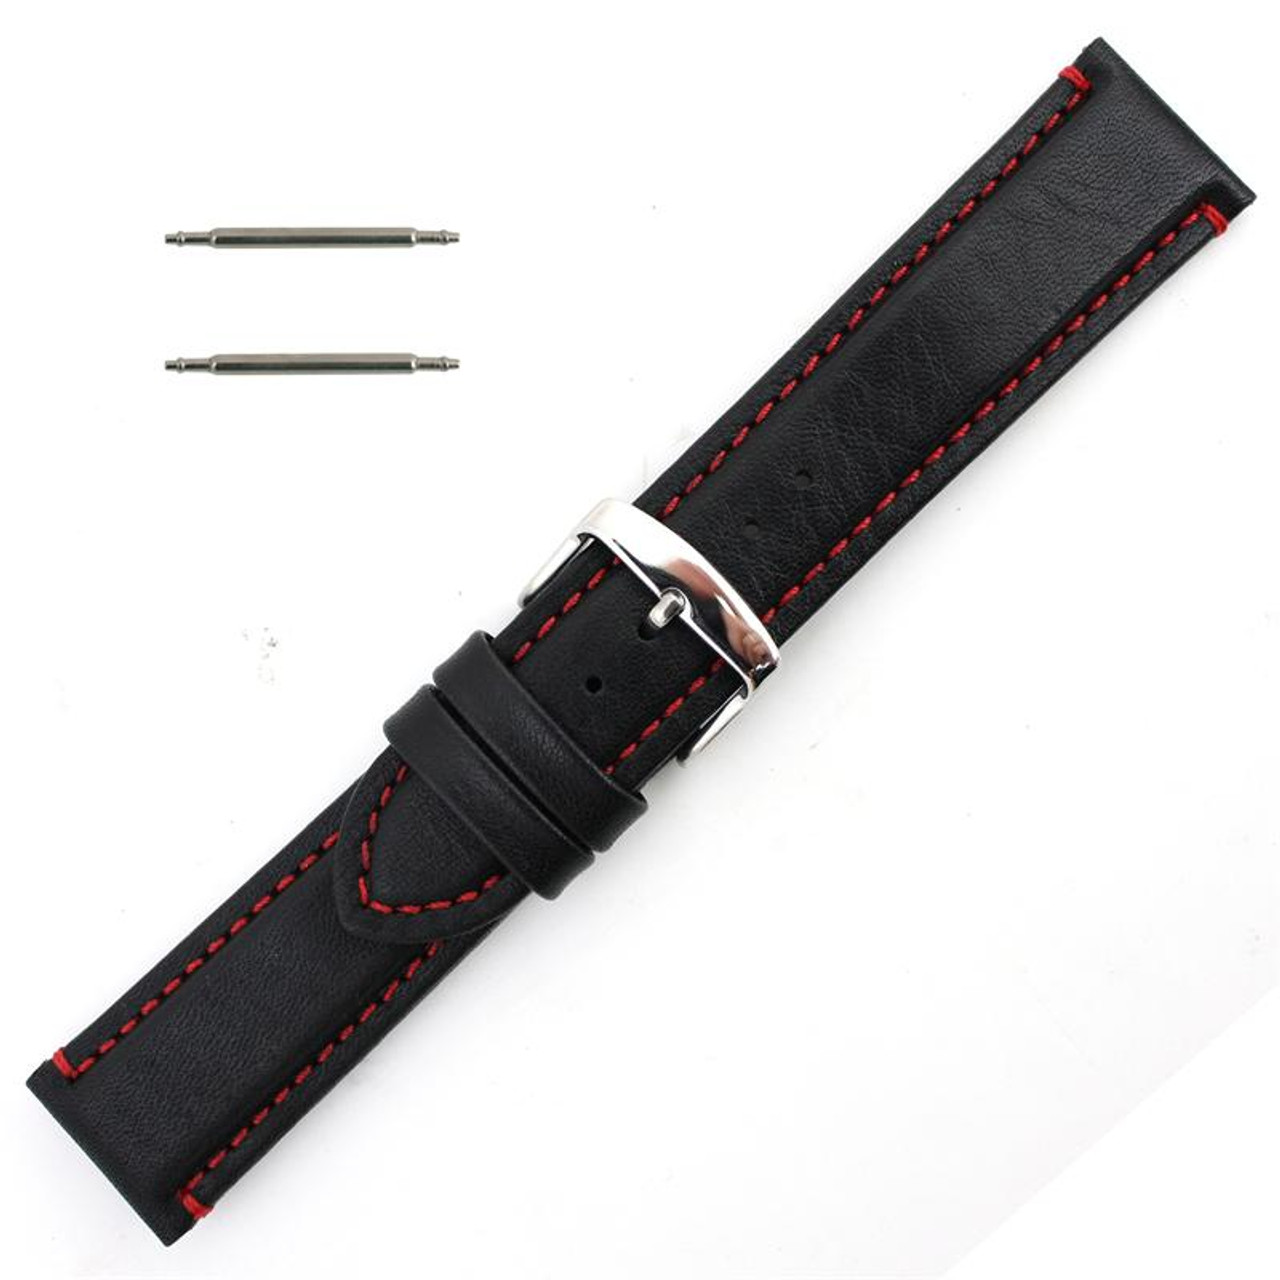 0eacd66e63e 22mm Waterproof Leather Watch Band Black 7 7 16 Inch Length